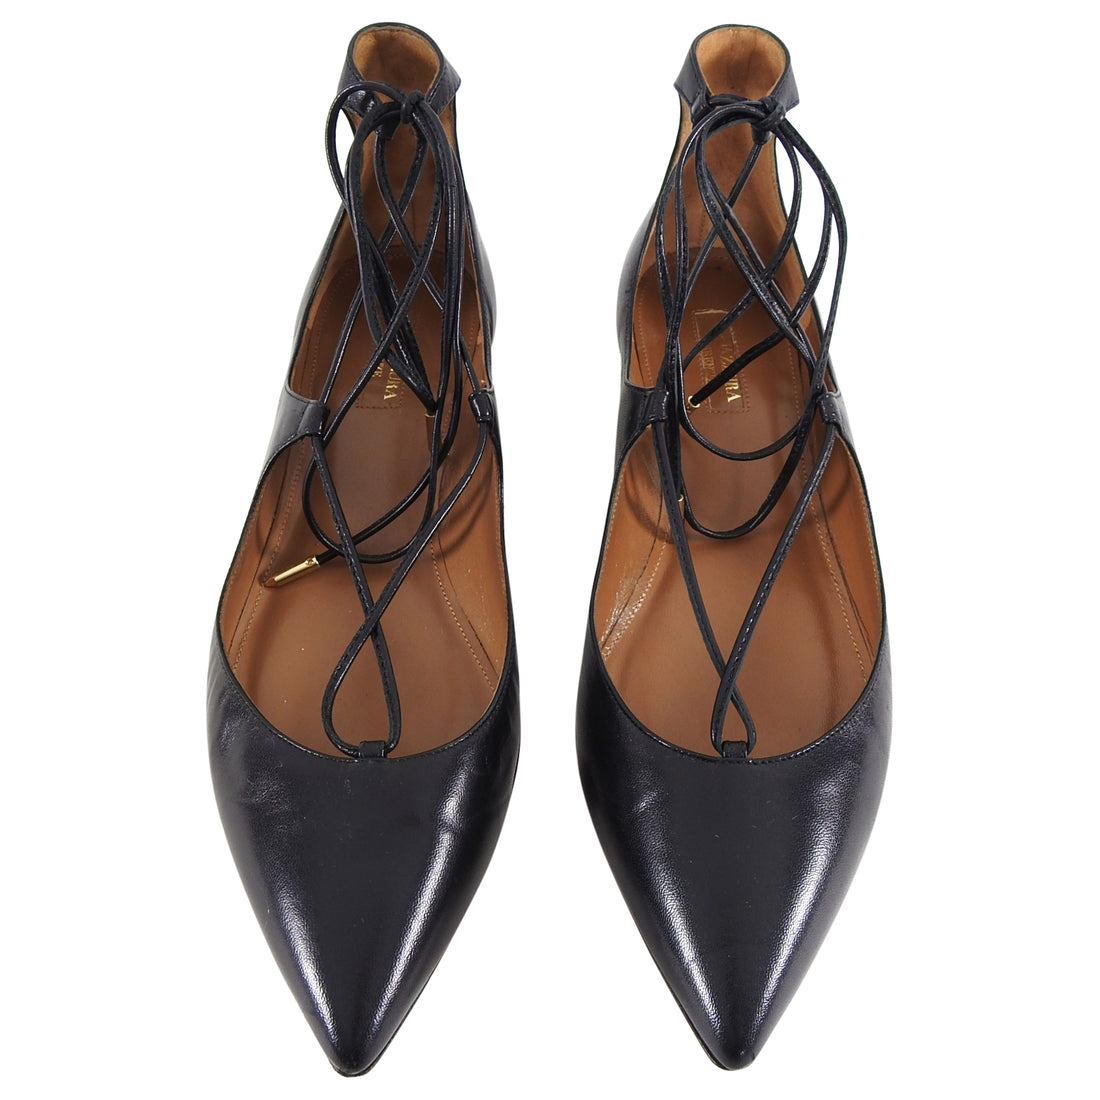 Aquazzura Black Leather Flat Lace Up Christy Shoes - 40